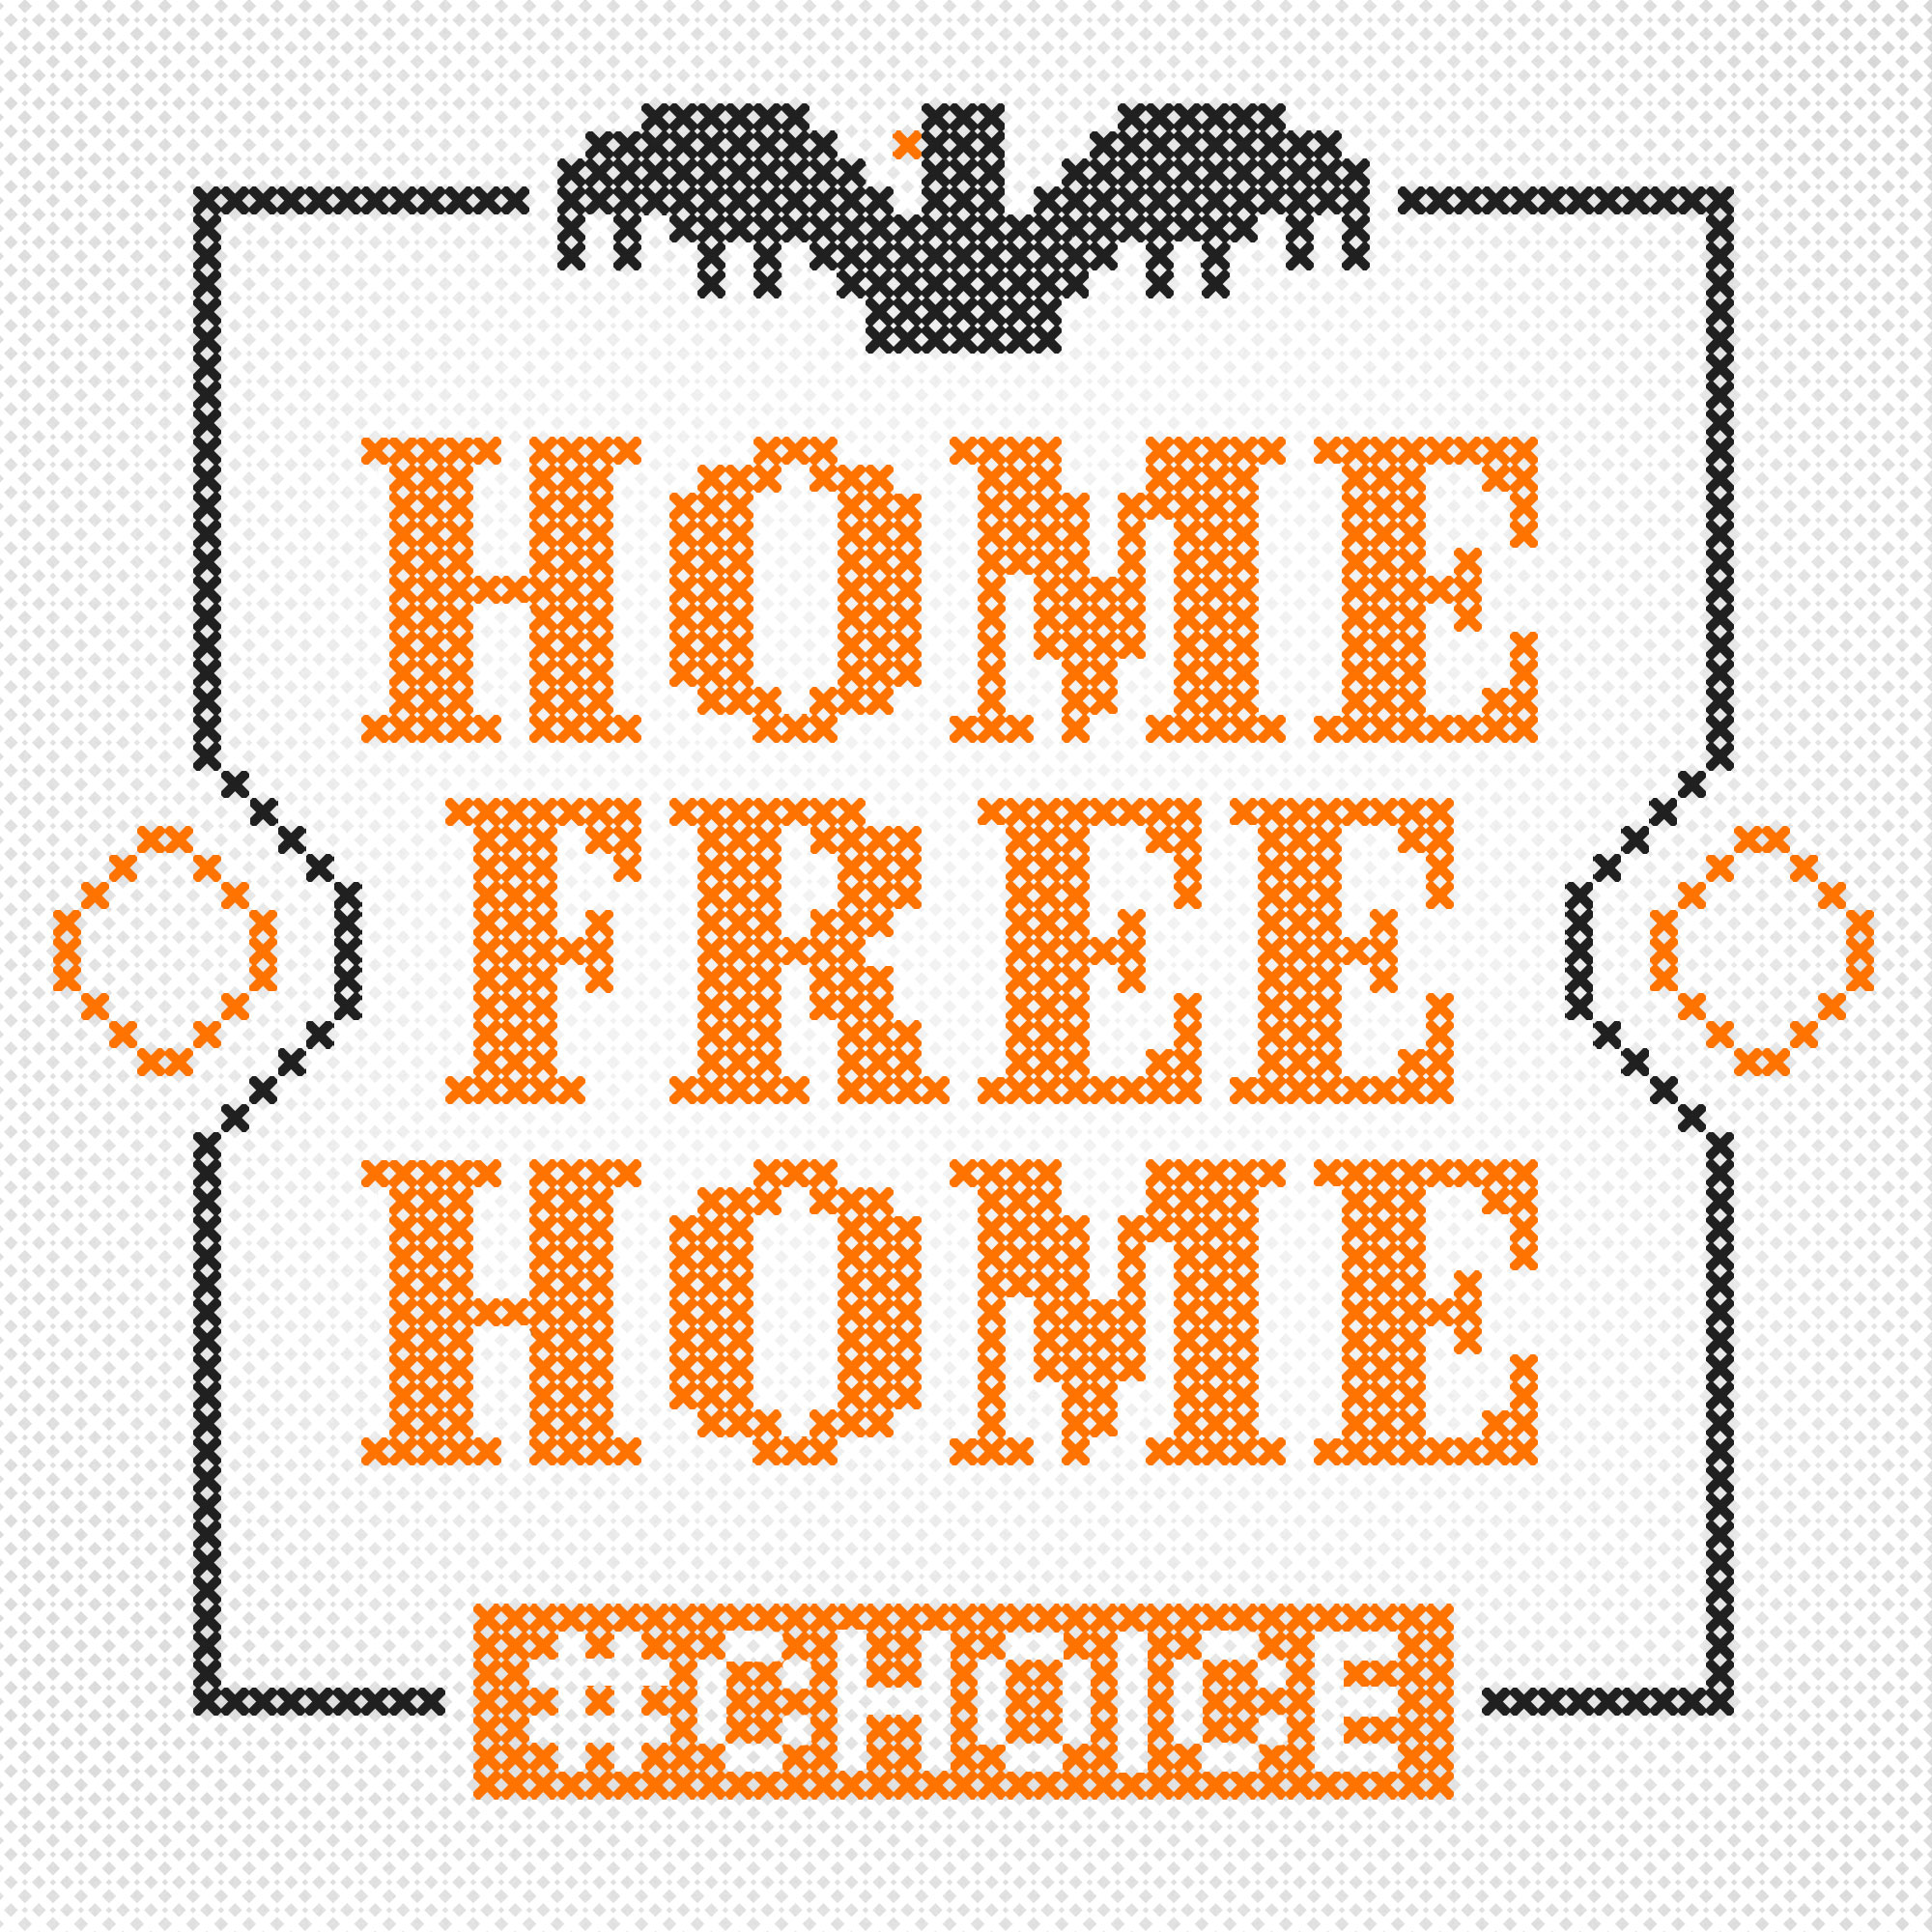 Protonet Zoe_Choice_Cross Stitch